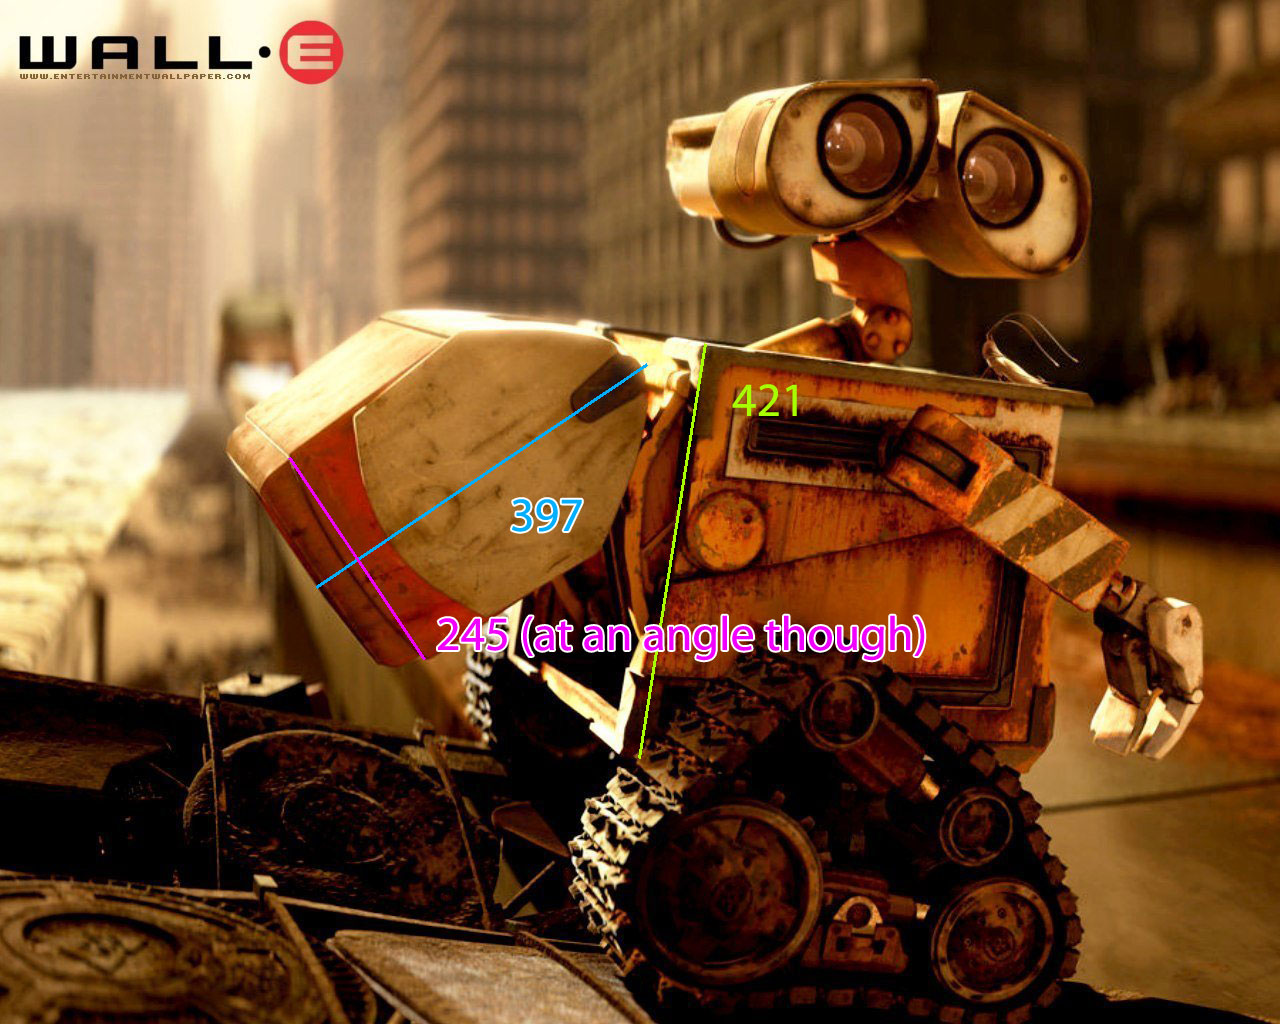 My Adventures With WALL-E: WALL-E Dimensions